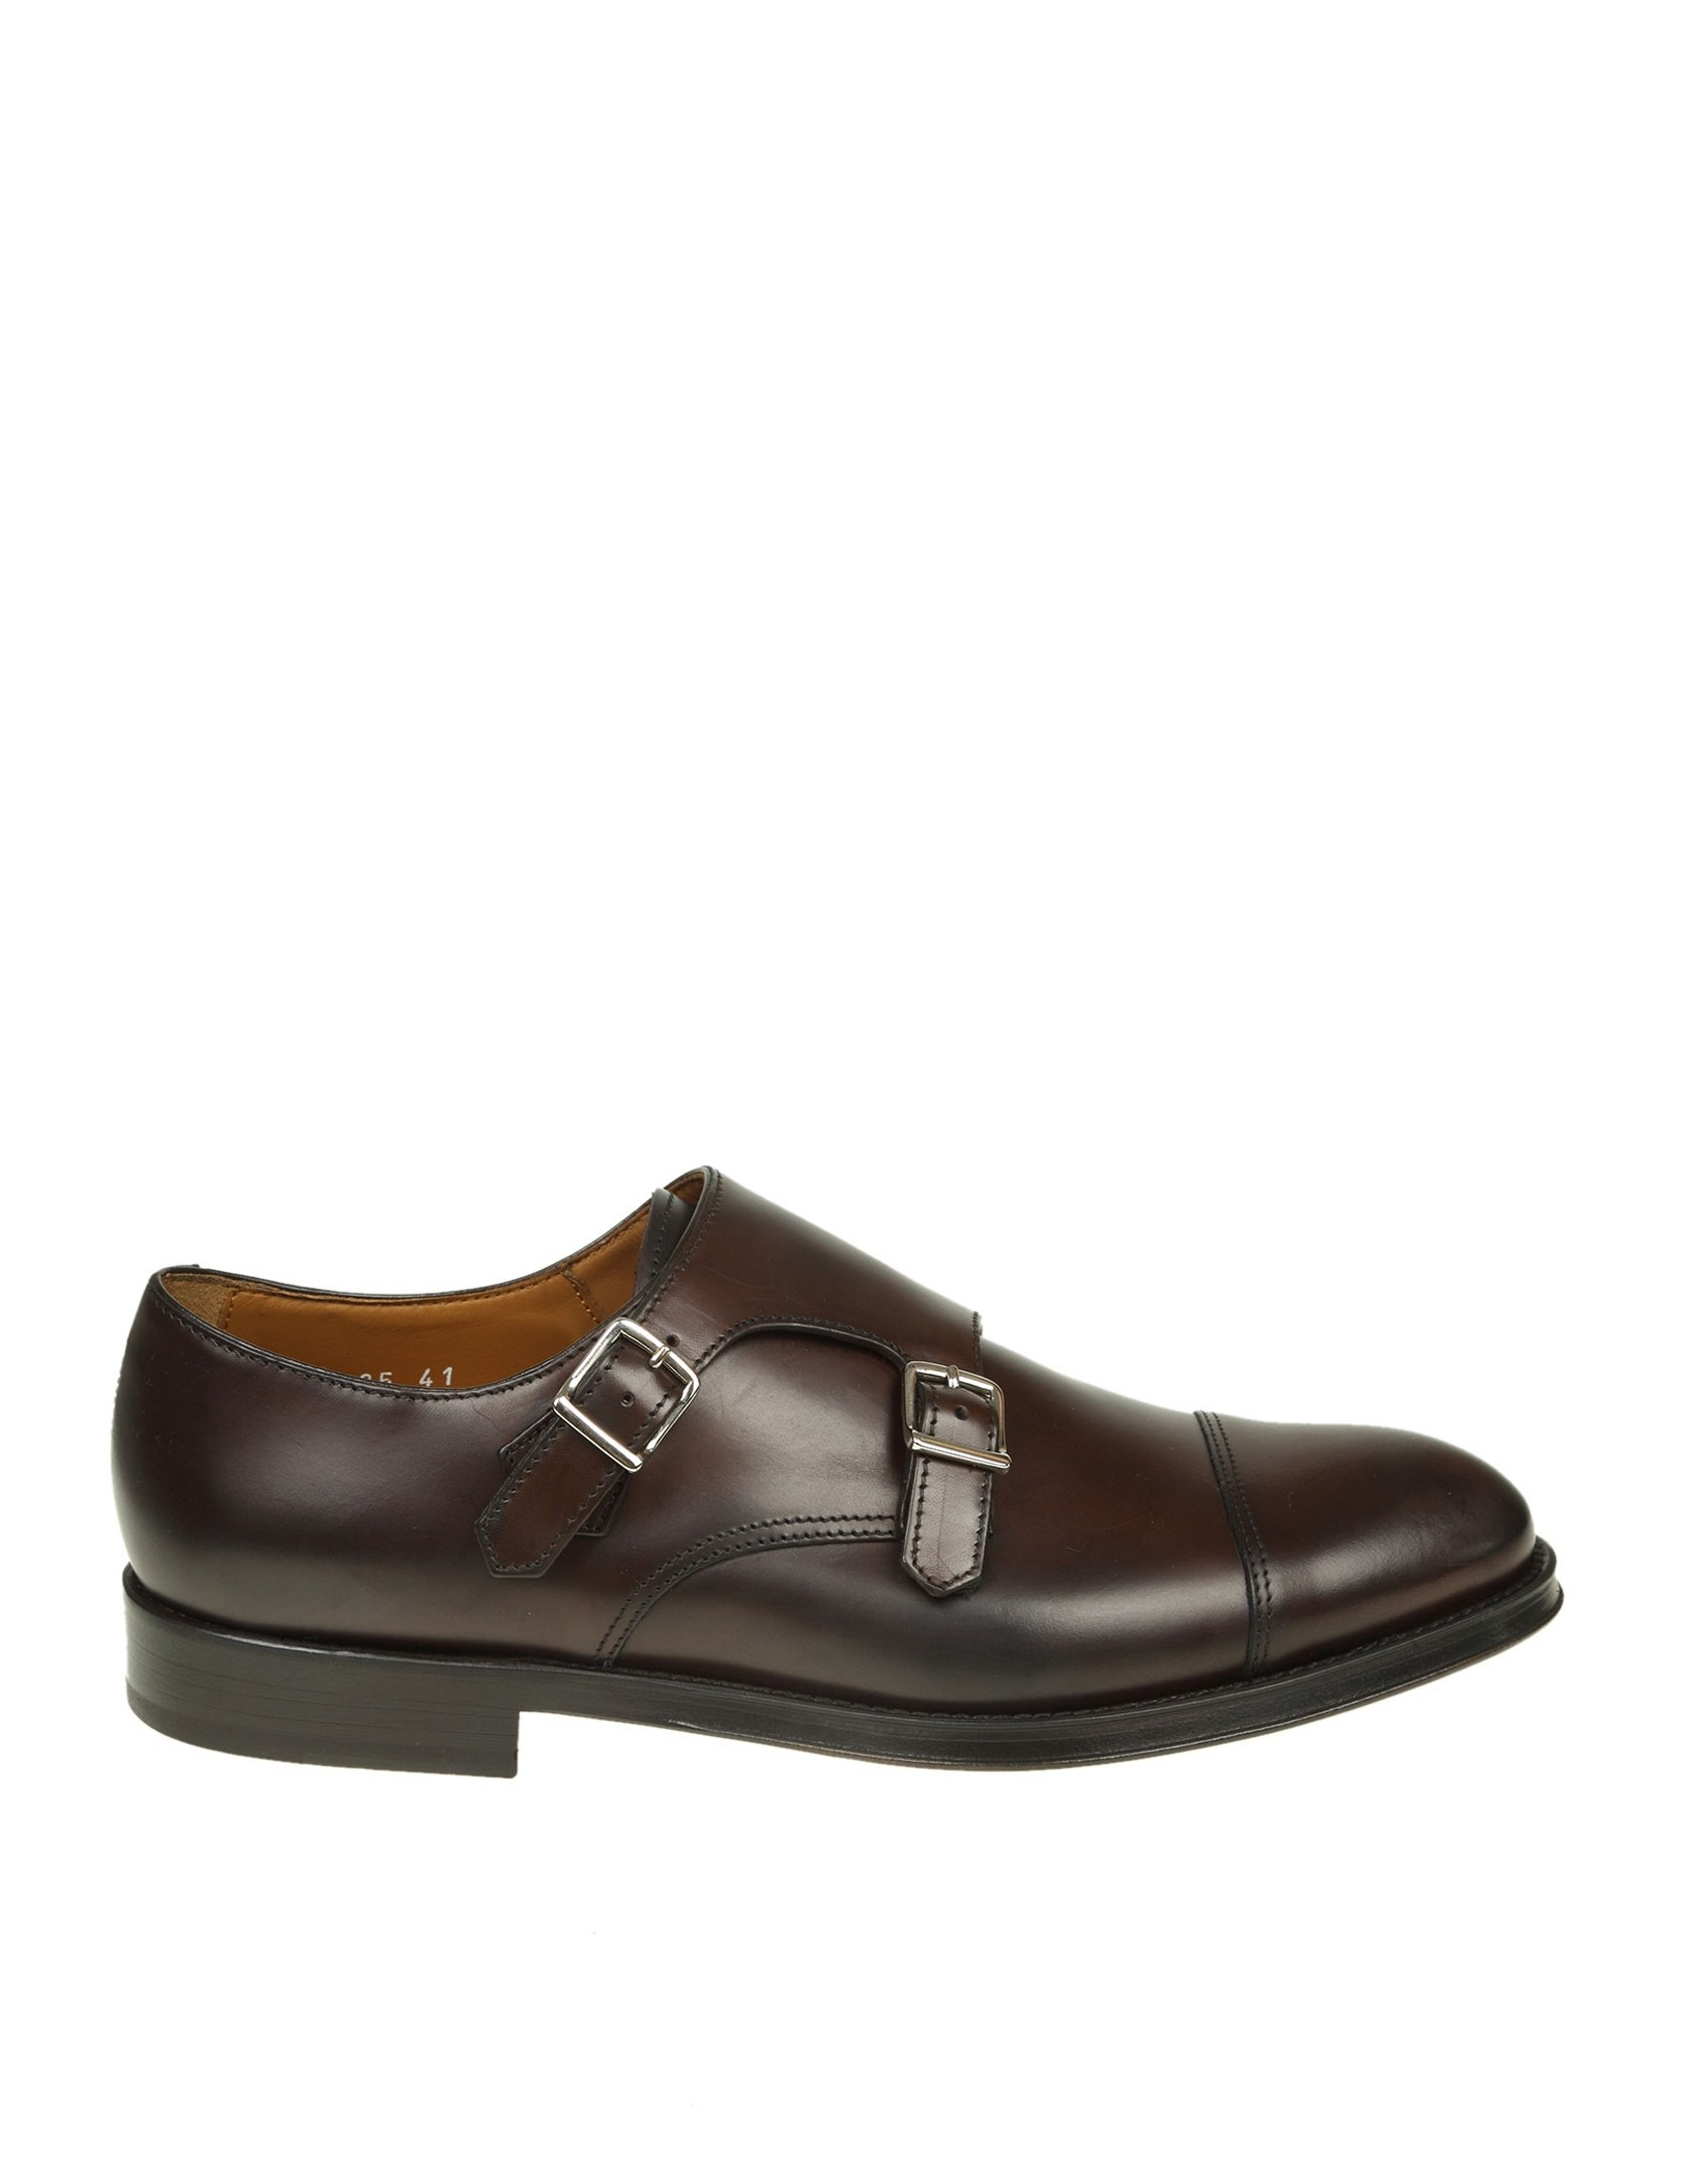 release date: f9d09 72efb doucal-s-shoe-with-double-buckle-in-leather-color-of-dark-brown.jpg